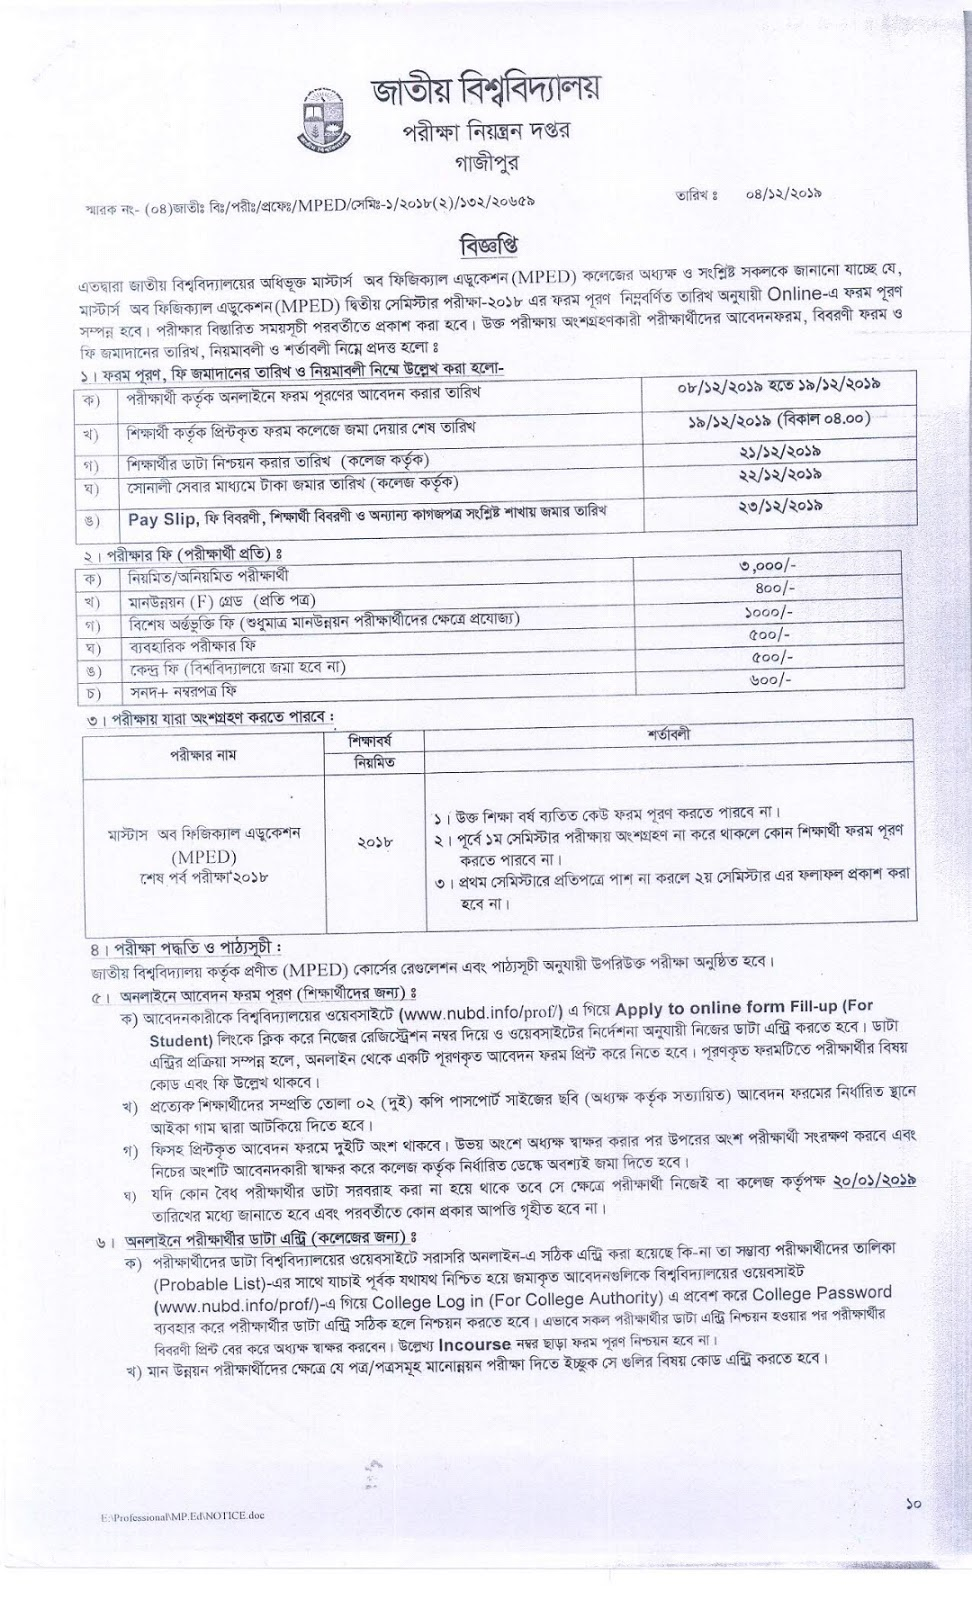 Master of physical education 2nd year form fill up notice 2018